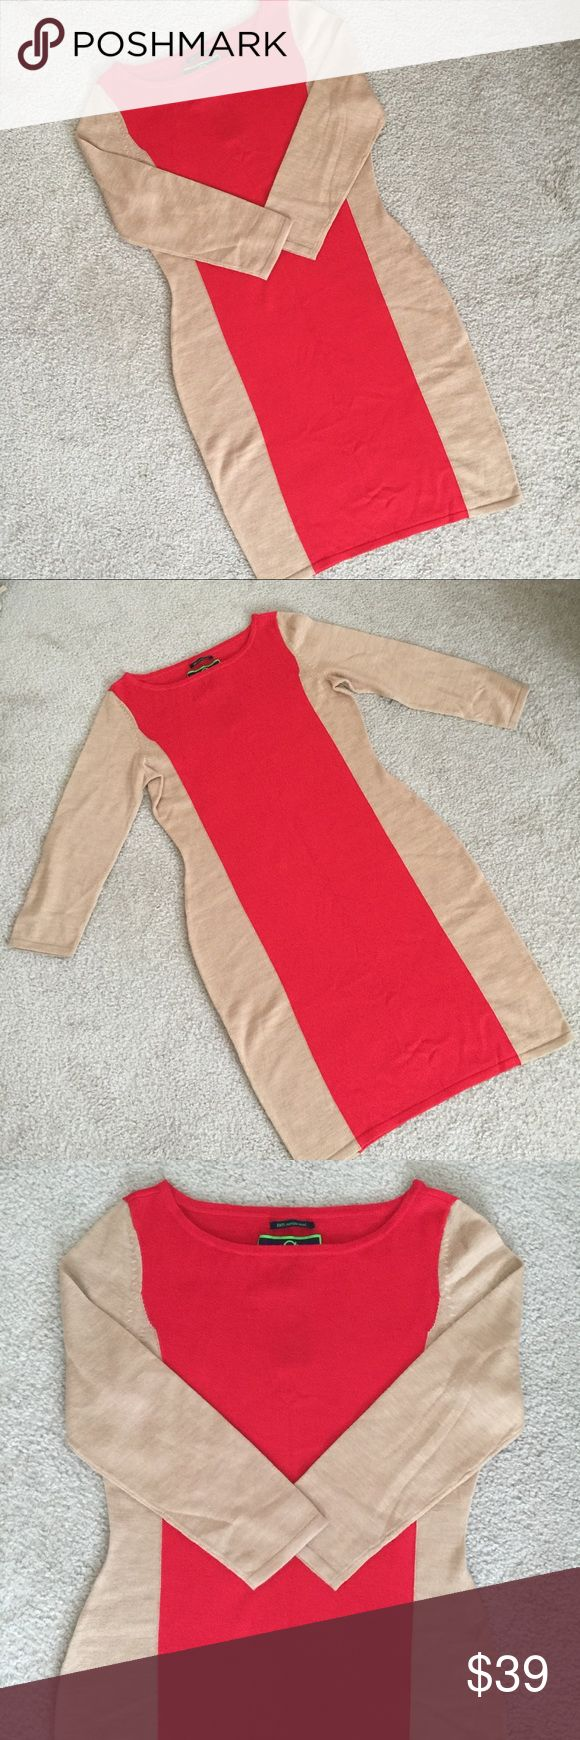 """C Wonder Elbow Sleeve Bateau Dress Size Medium 100% Marino Wool dress from C Wonder! Camel and red/orange color block design, 3/4 sleeve. 37"""" from shoulder to hem; 18"""" armpit to armpit; 15.5"""" across waist when laid flat. 19.5"""" across hip when laid flat. Sleeves are 20"""" long. Brand new with tags; however, label is coming loose from garment with some pulling of knit - please see pics for details. C Wonder Dresses"""